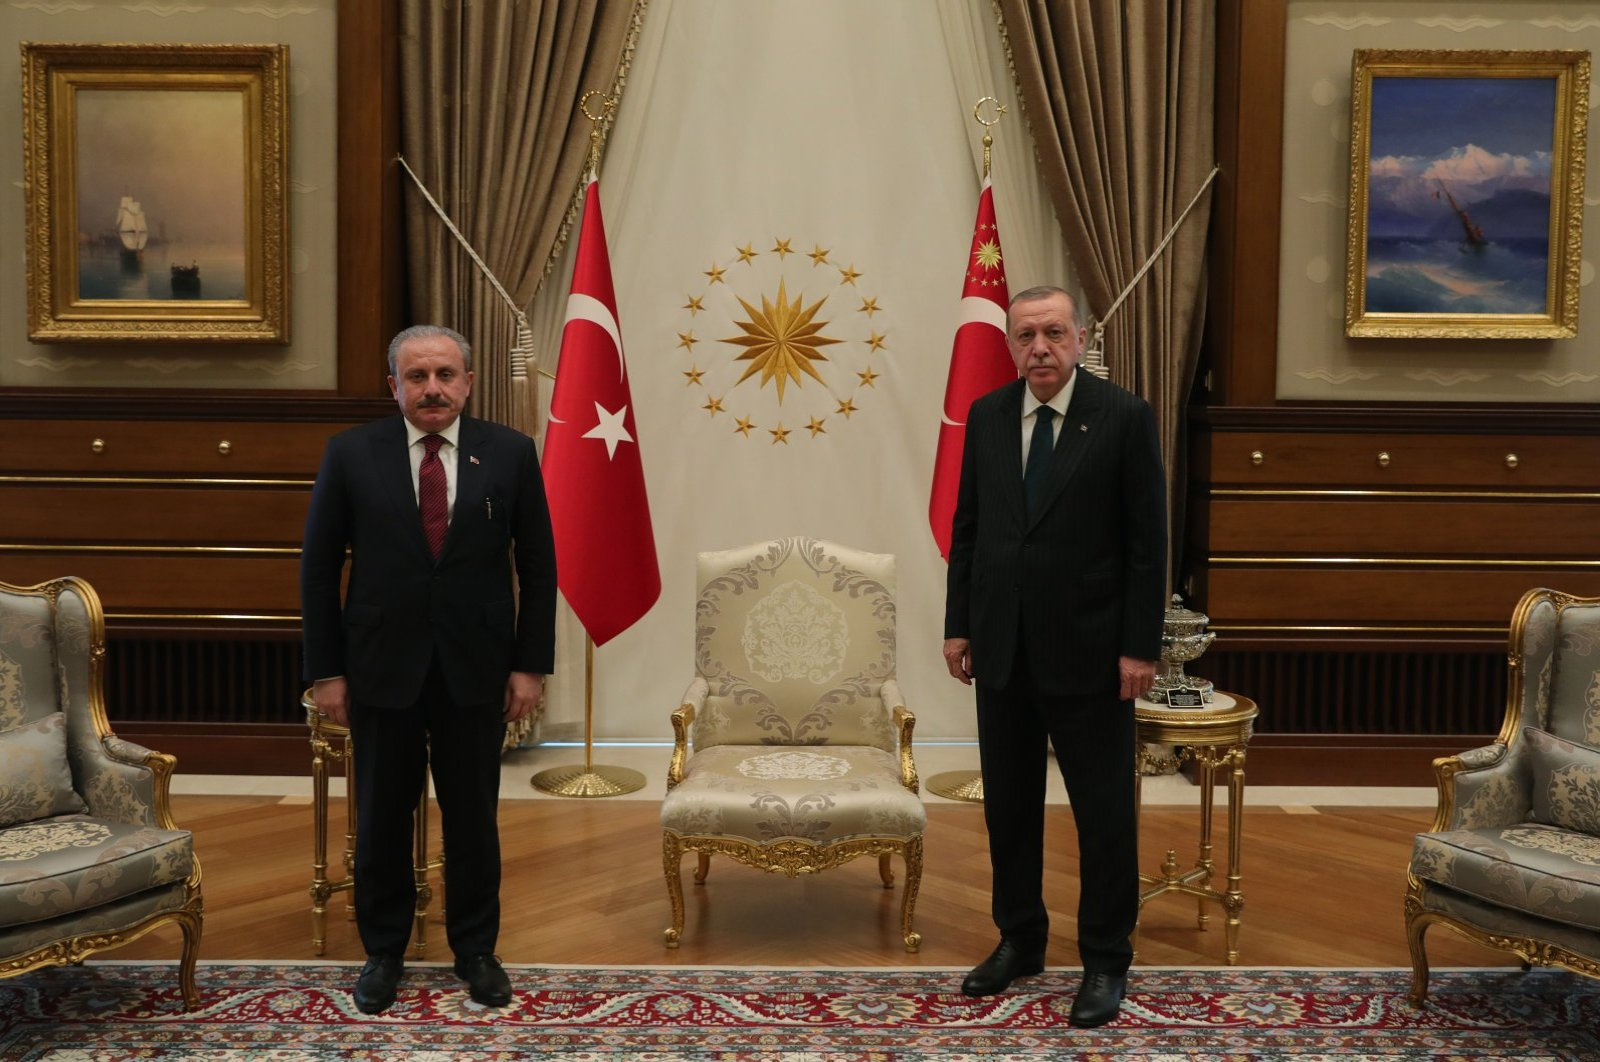 Parliament Speaker Mustafa Şentop is hosted by President Recep Tayyip Erdoğan at the presidential complex in the capital Ankara, June 17, 2020. (AA Photo)